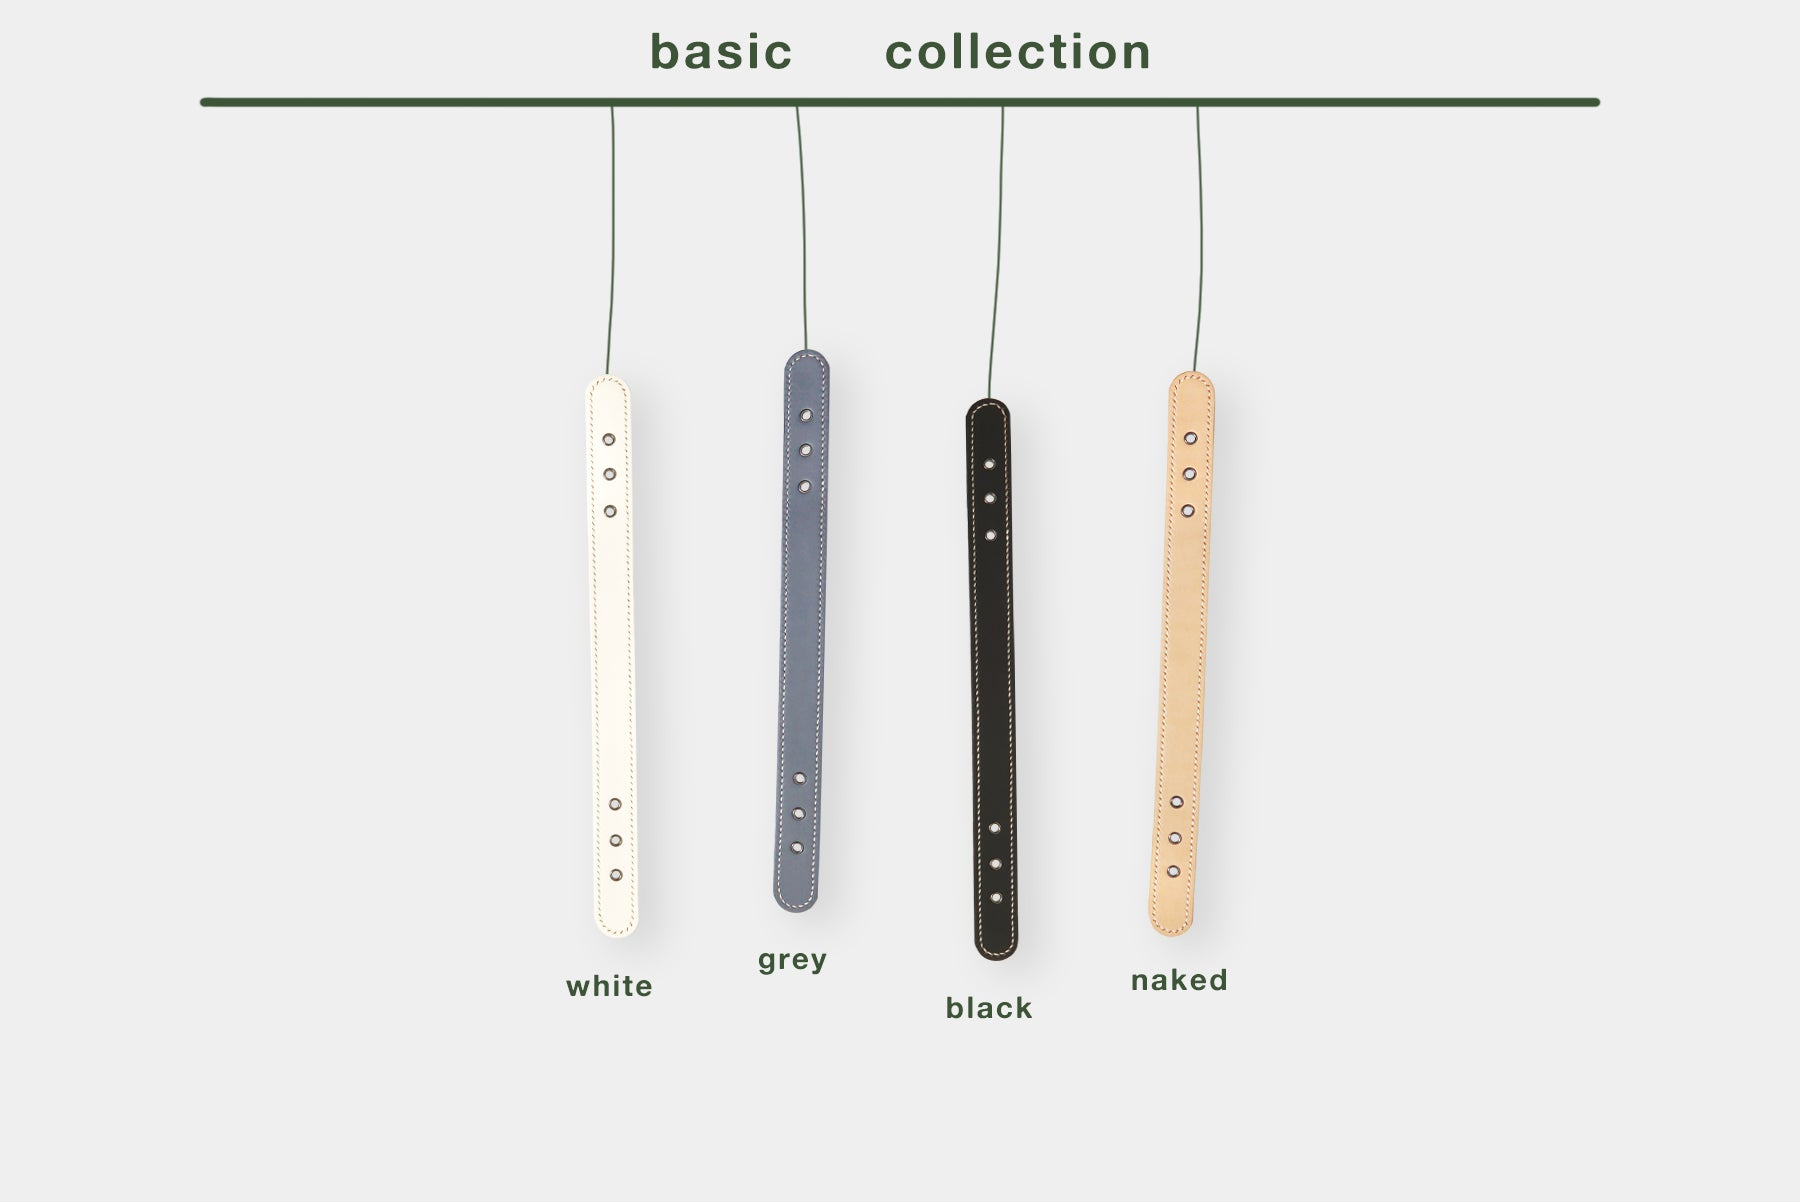 color chart - basic collection